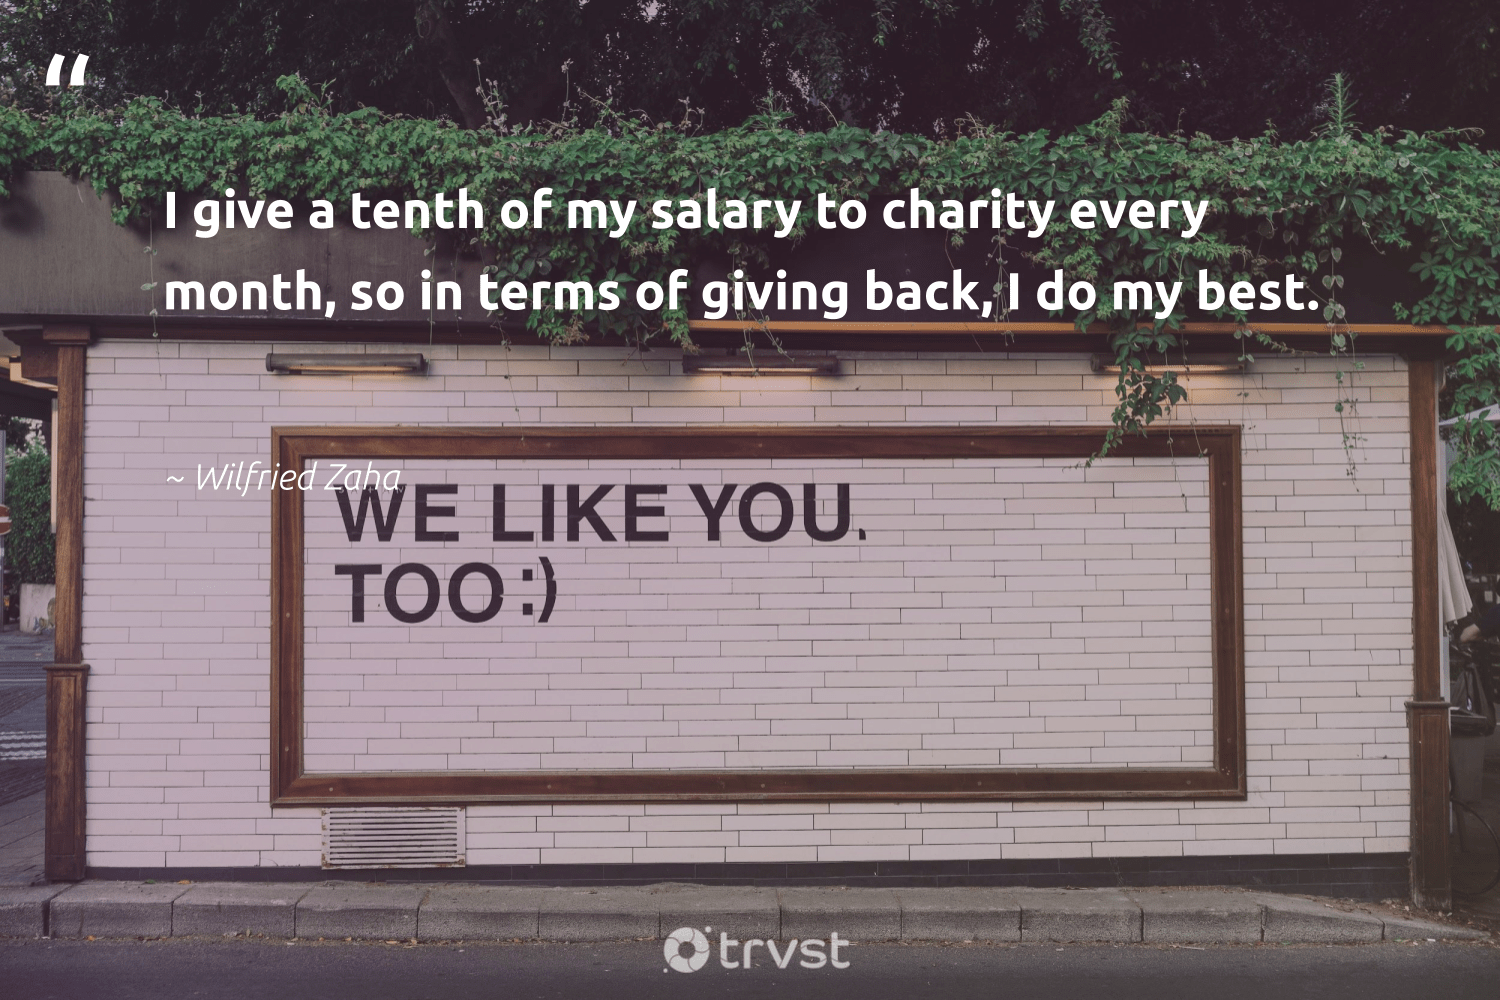 """""""I give a tenth of my salary to charity every month, so in terms of giving back, I do my best.""""  - Wilfried Zaha #trvst #quotes #givingback #socialgood #giveback #communities #togetherwecan #dogood #equalopportunity #changemakers #socialimpact #socialchange"""